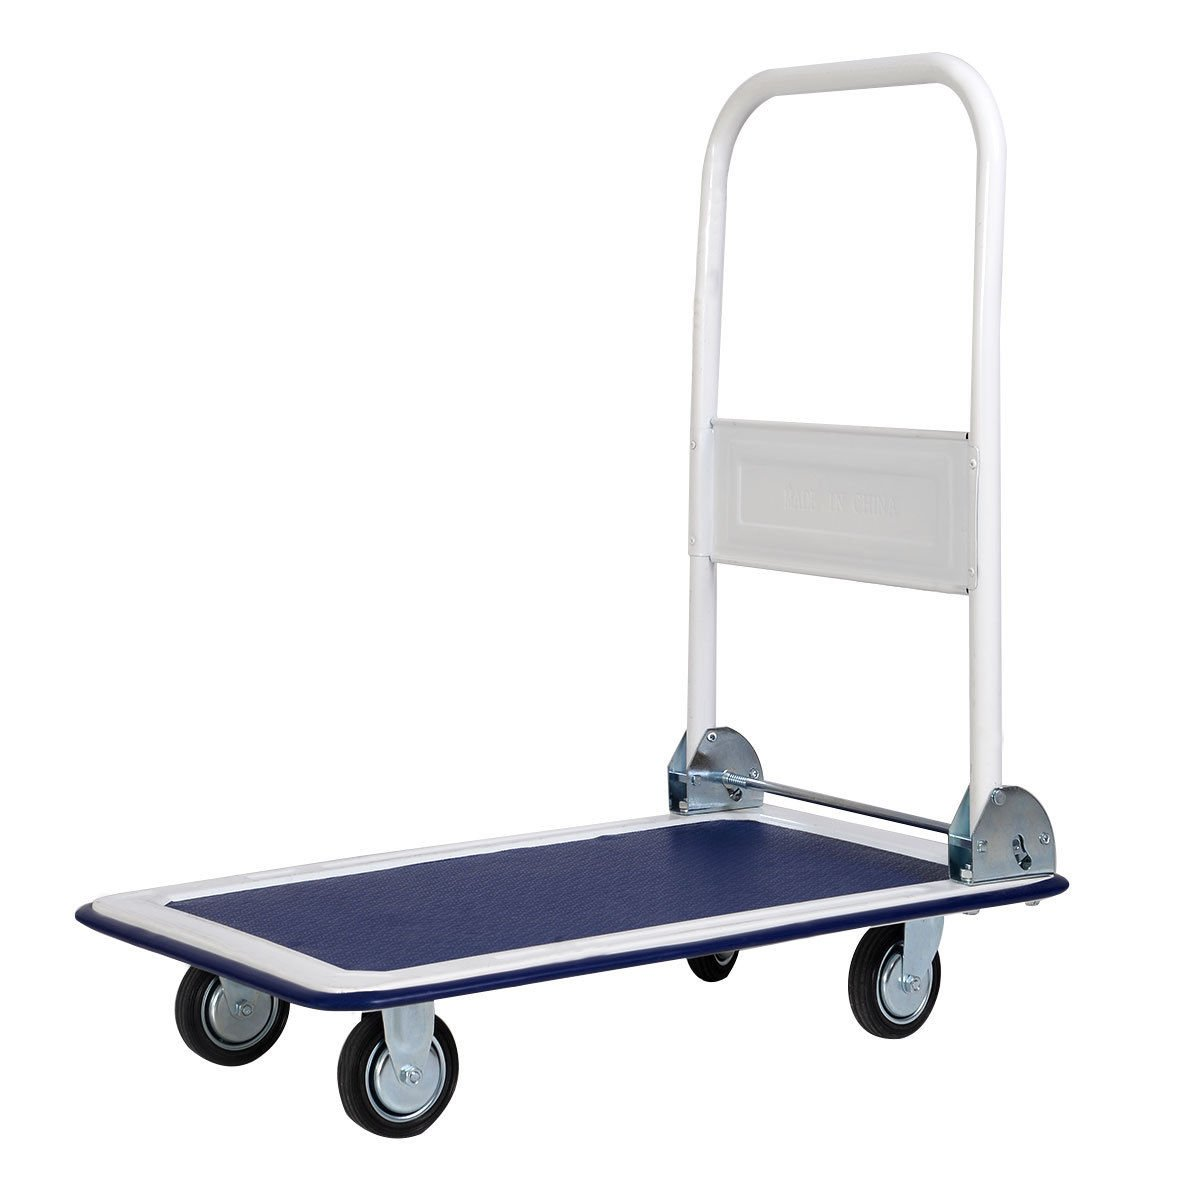 New 330lbs Blue Platform Cart Dolly Folding Foldable Moving Warehouse Push Hand Truck